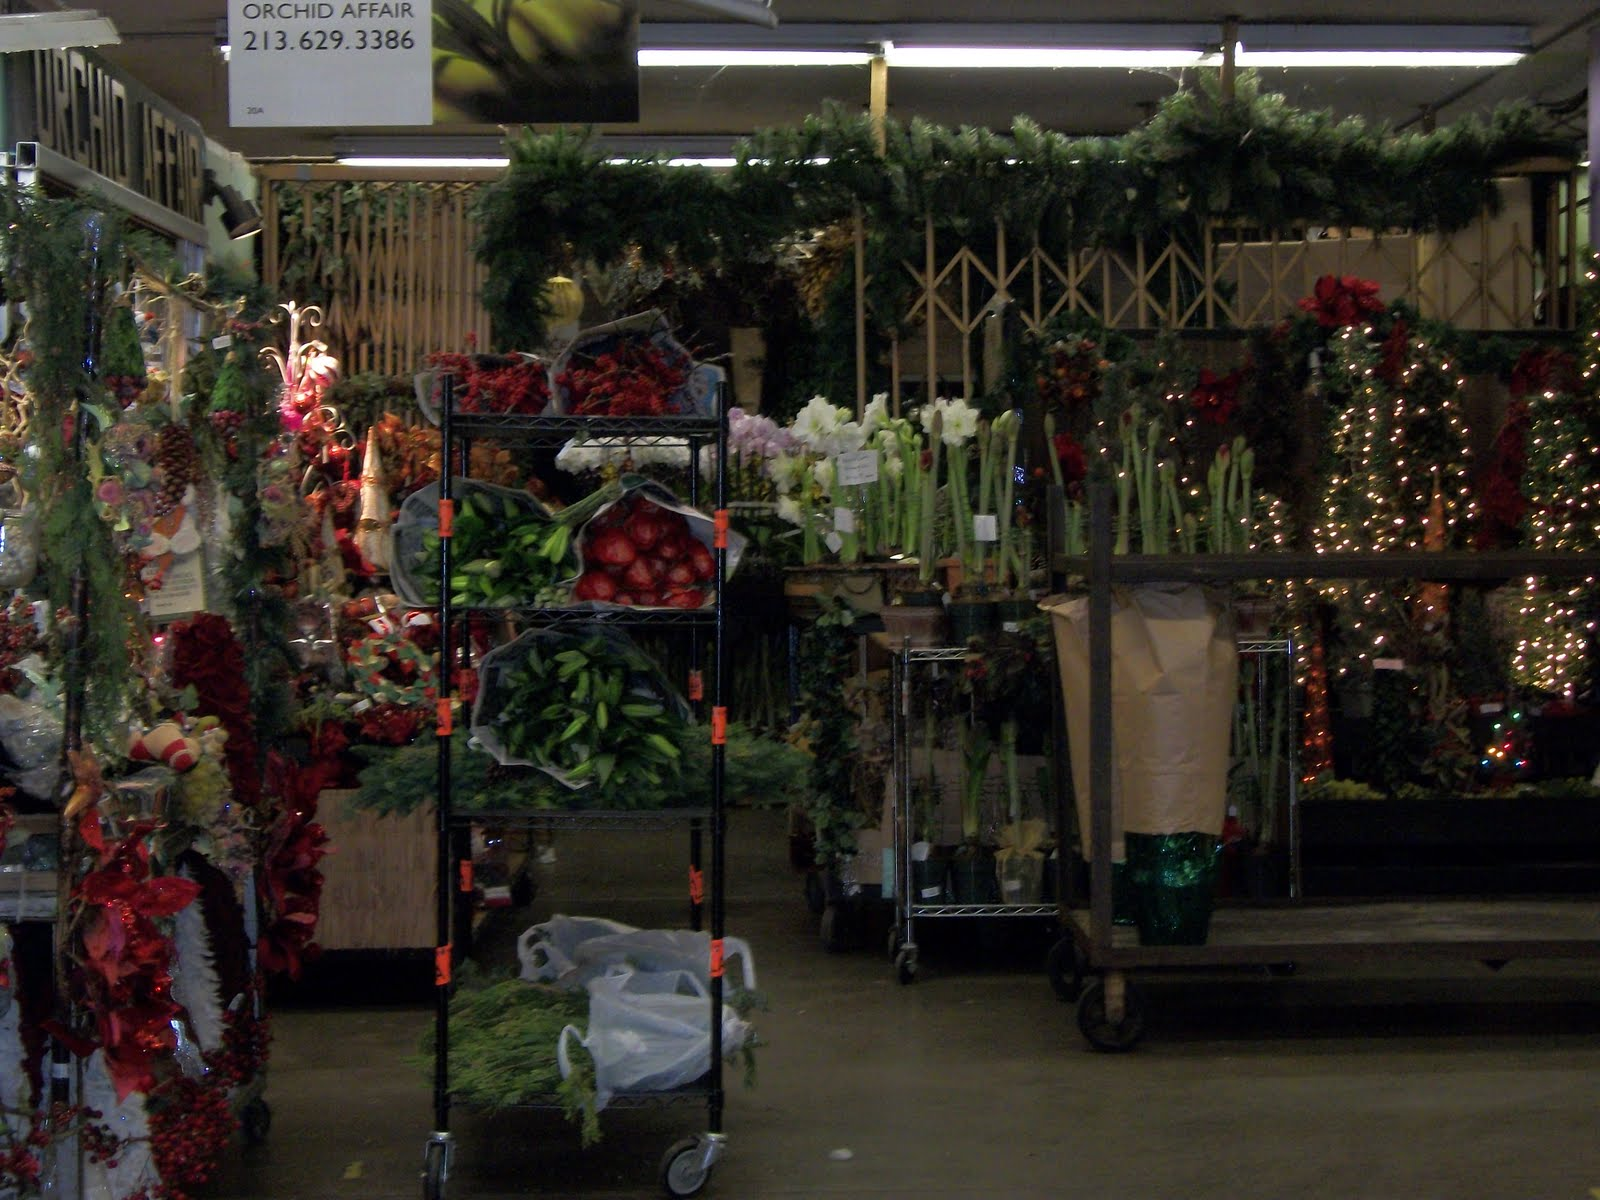 35 in 52 discovering the real los angeles los angeles flower district los angeles flower district mightylinksfo